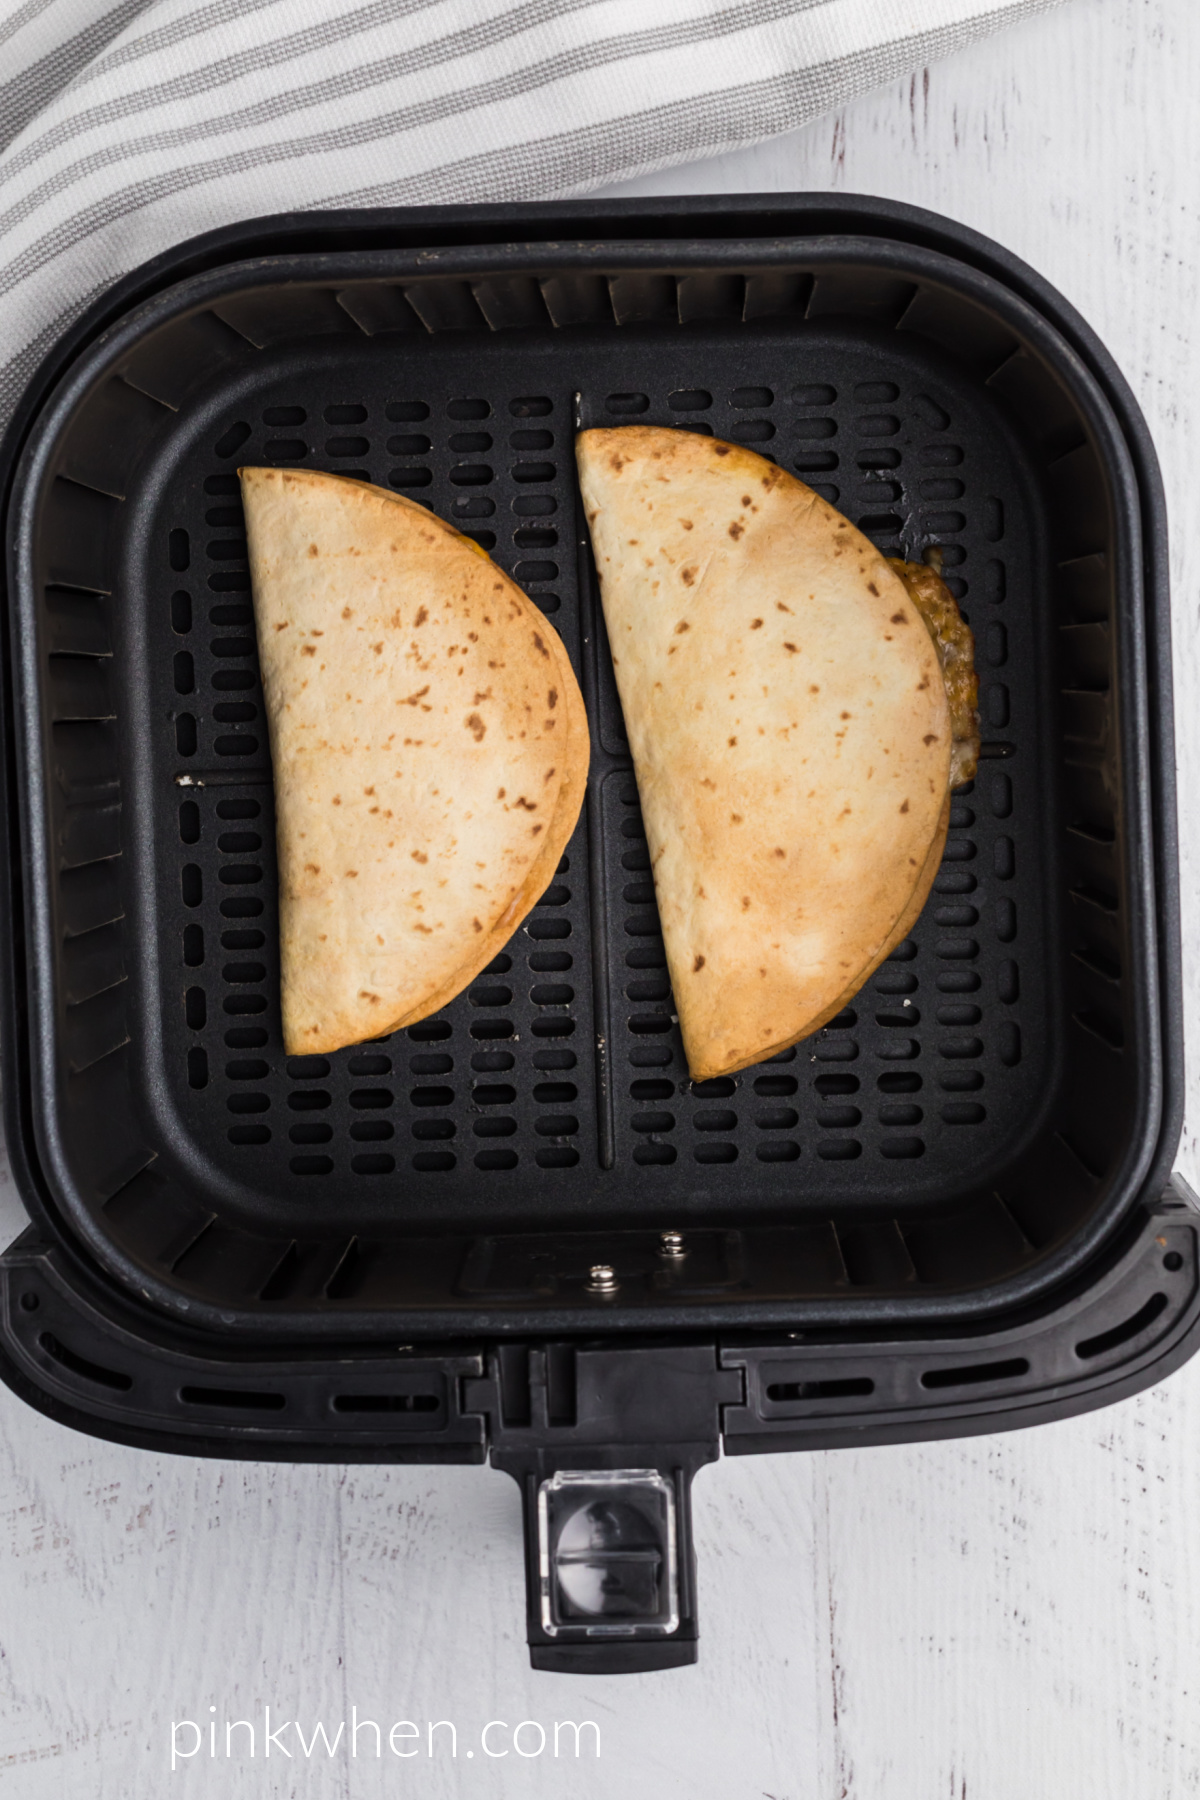 Cooked quesadillas in the air fryer basket.